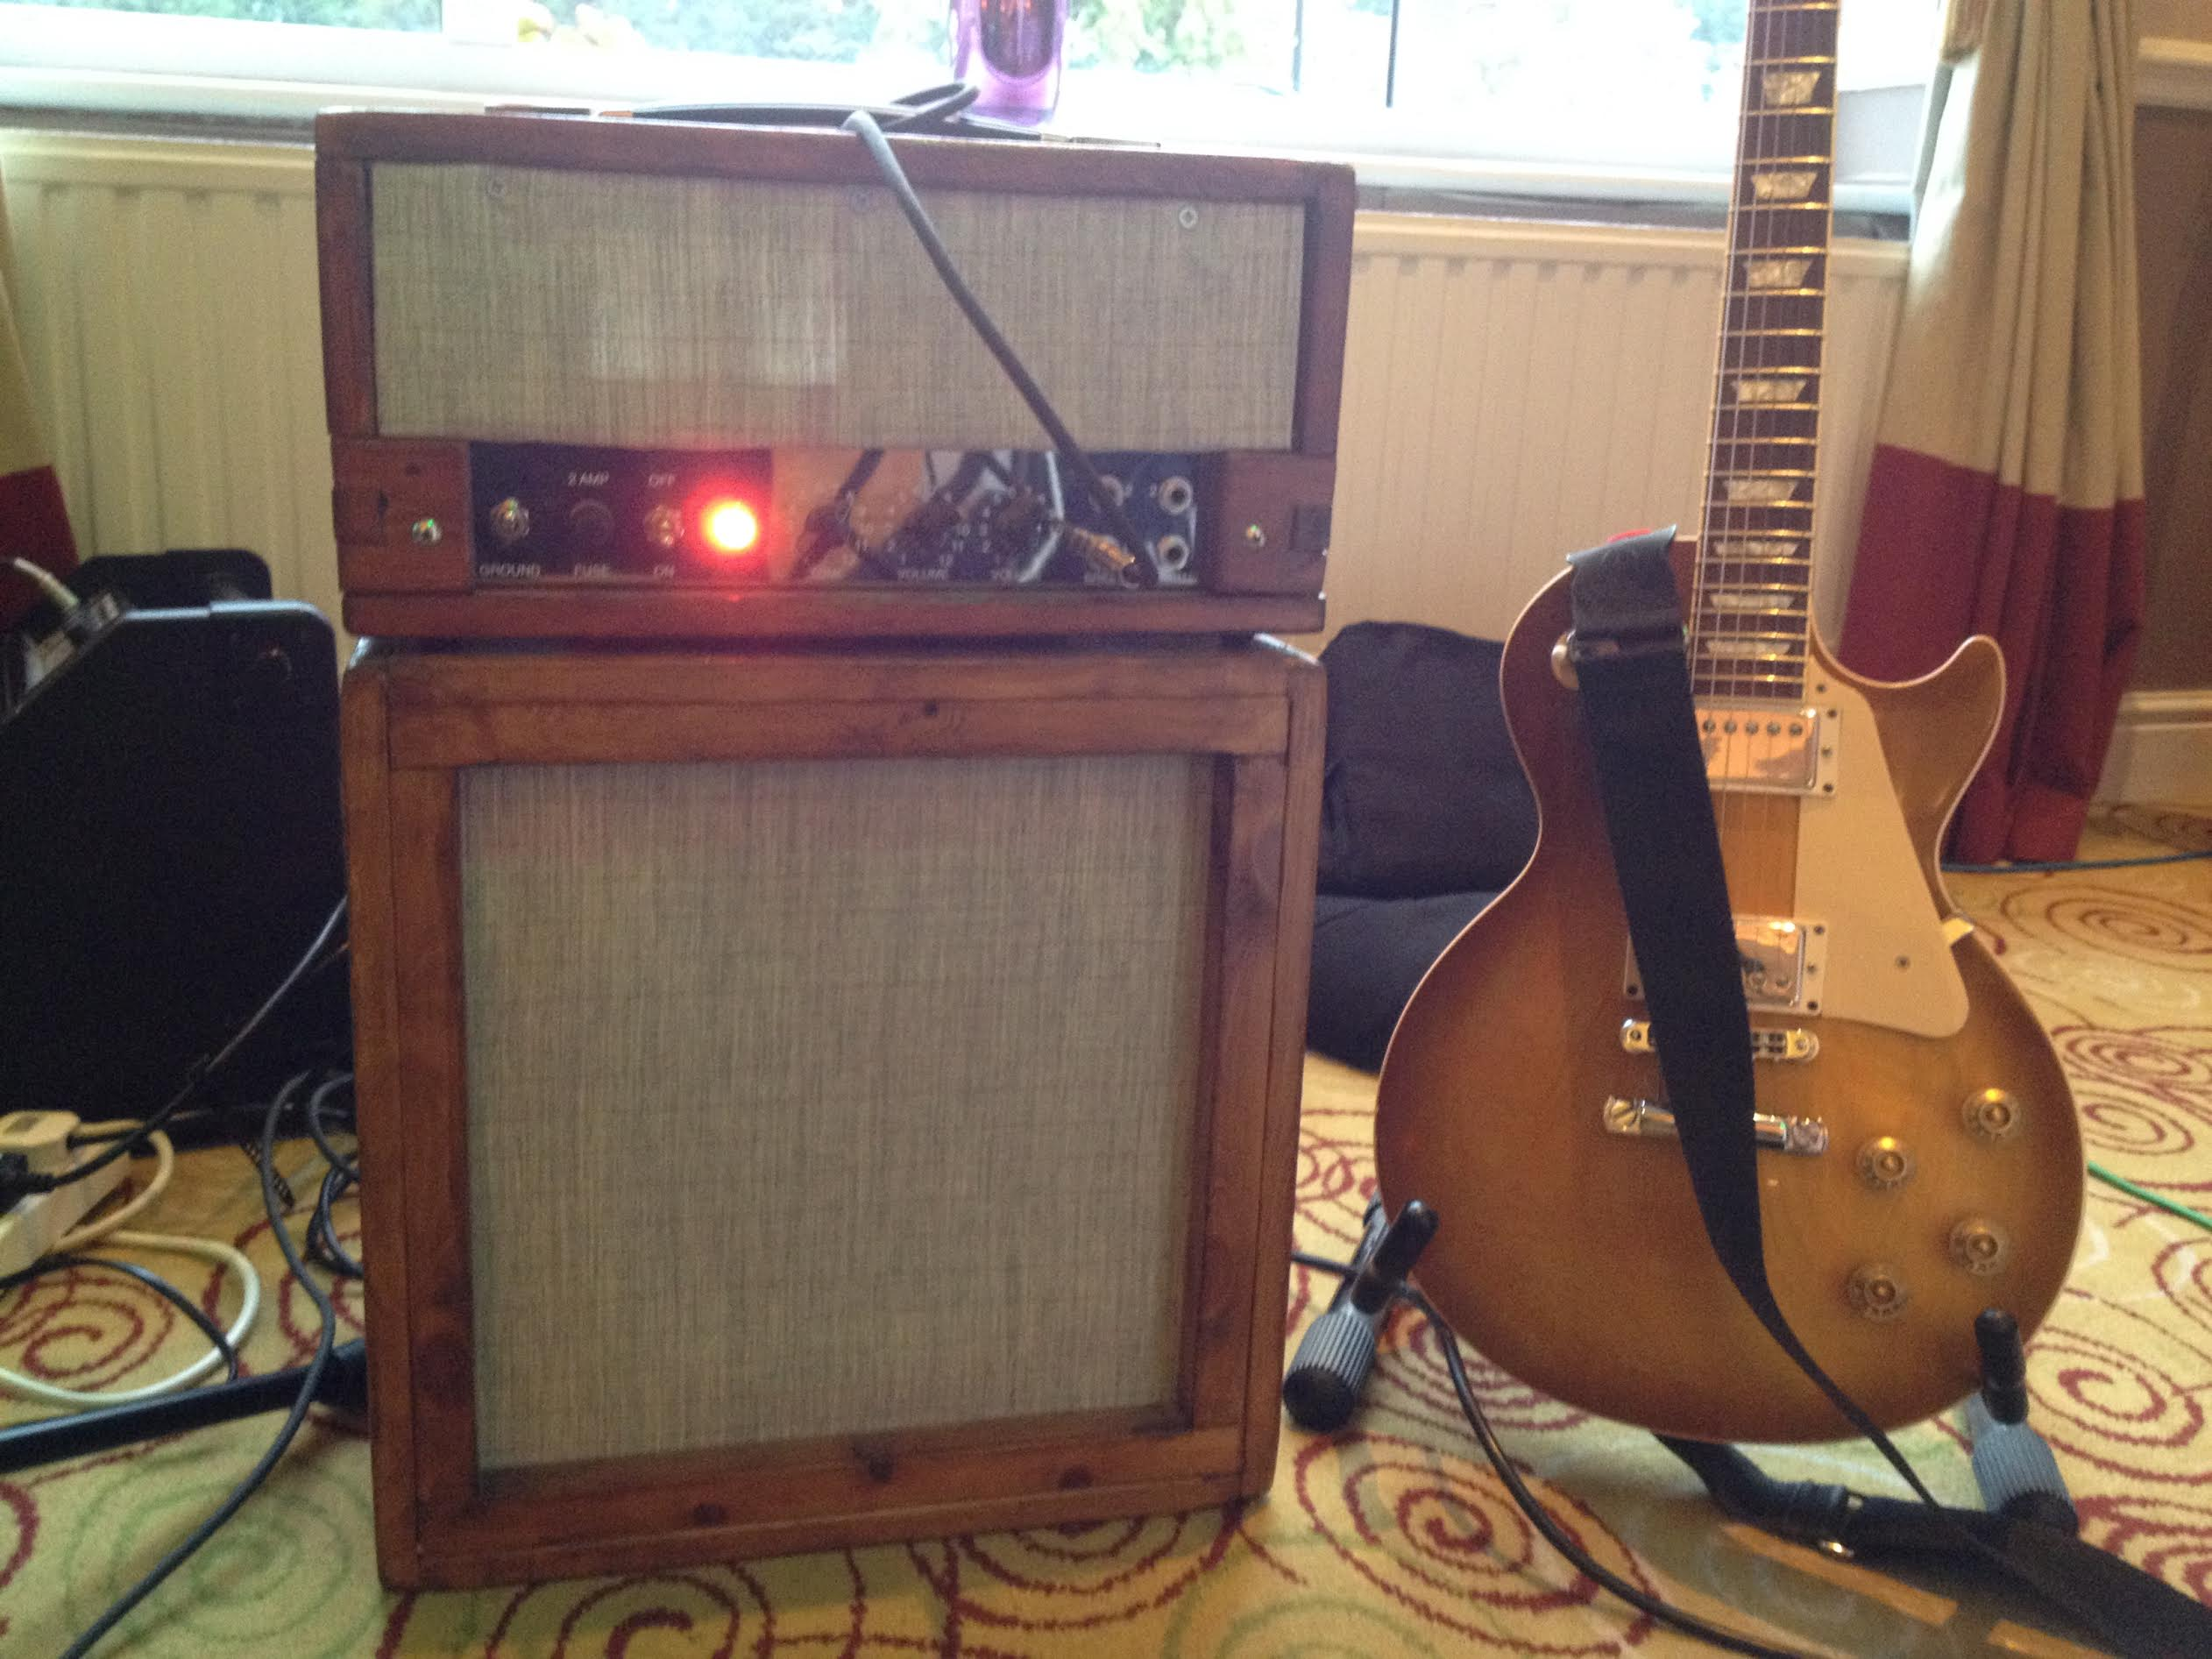 Welcome to tubedepot using it with a les paul my homemade tele and a 1937 cromwell archtop jimmy b buy this tweed 5e3 vacuum tube amp kit solutioingenieria Image collections